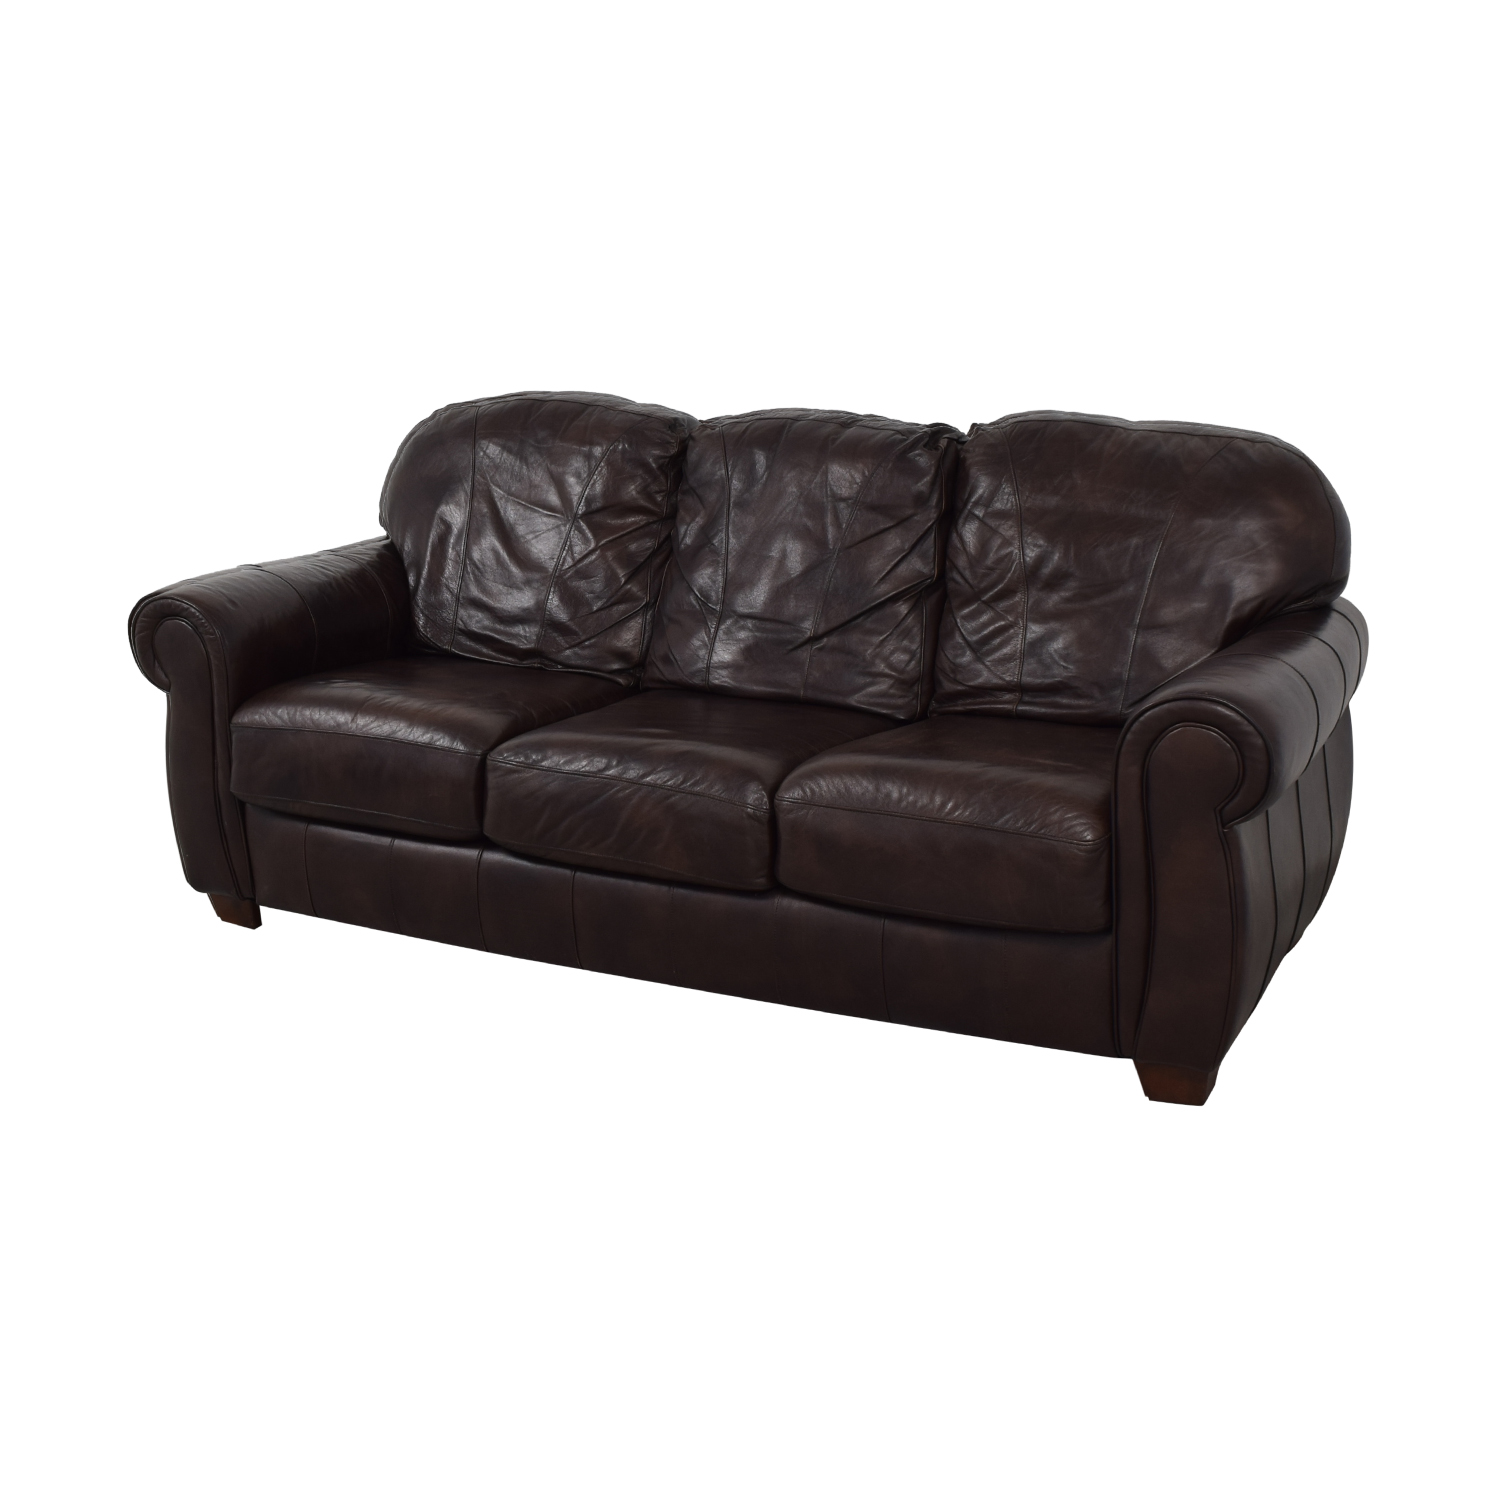 Swell Lane Leather Couch Beutiful Home Inspiration Truamahrainfo